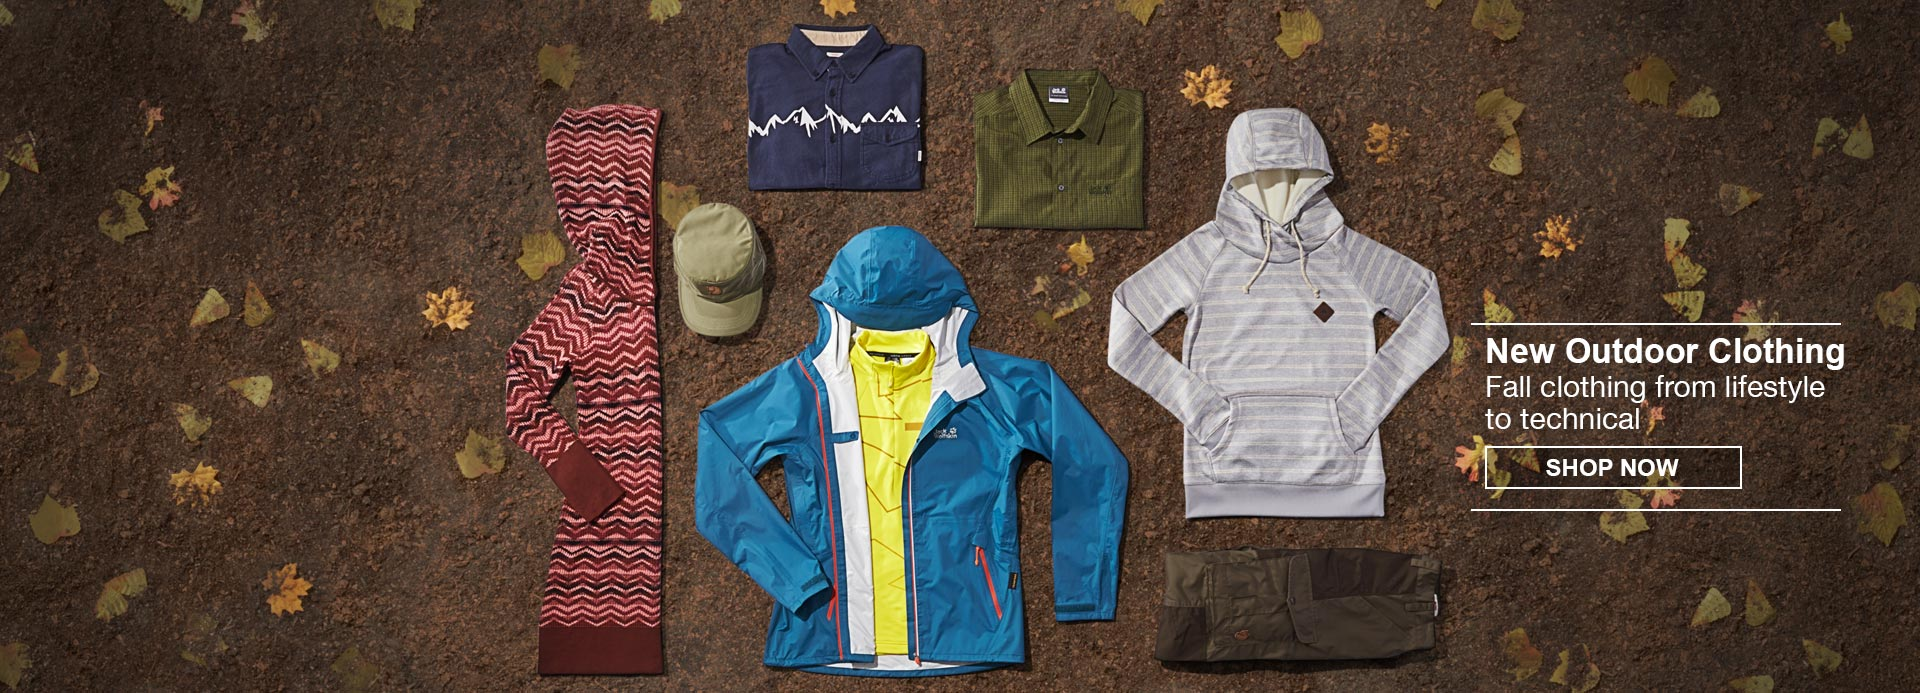 New Outdoor Clothing on Amazon Outdoors